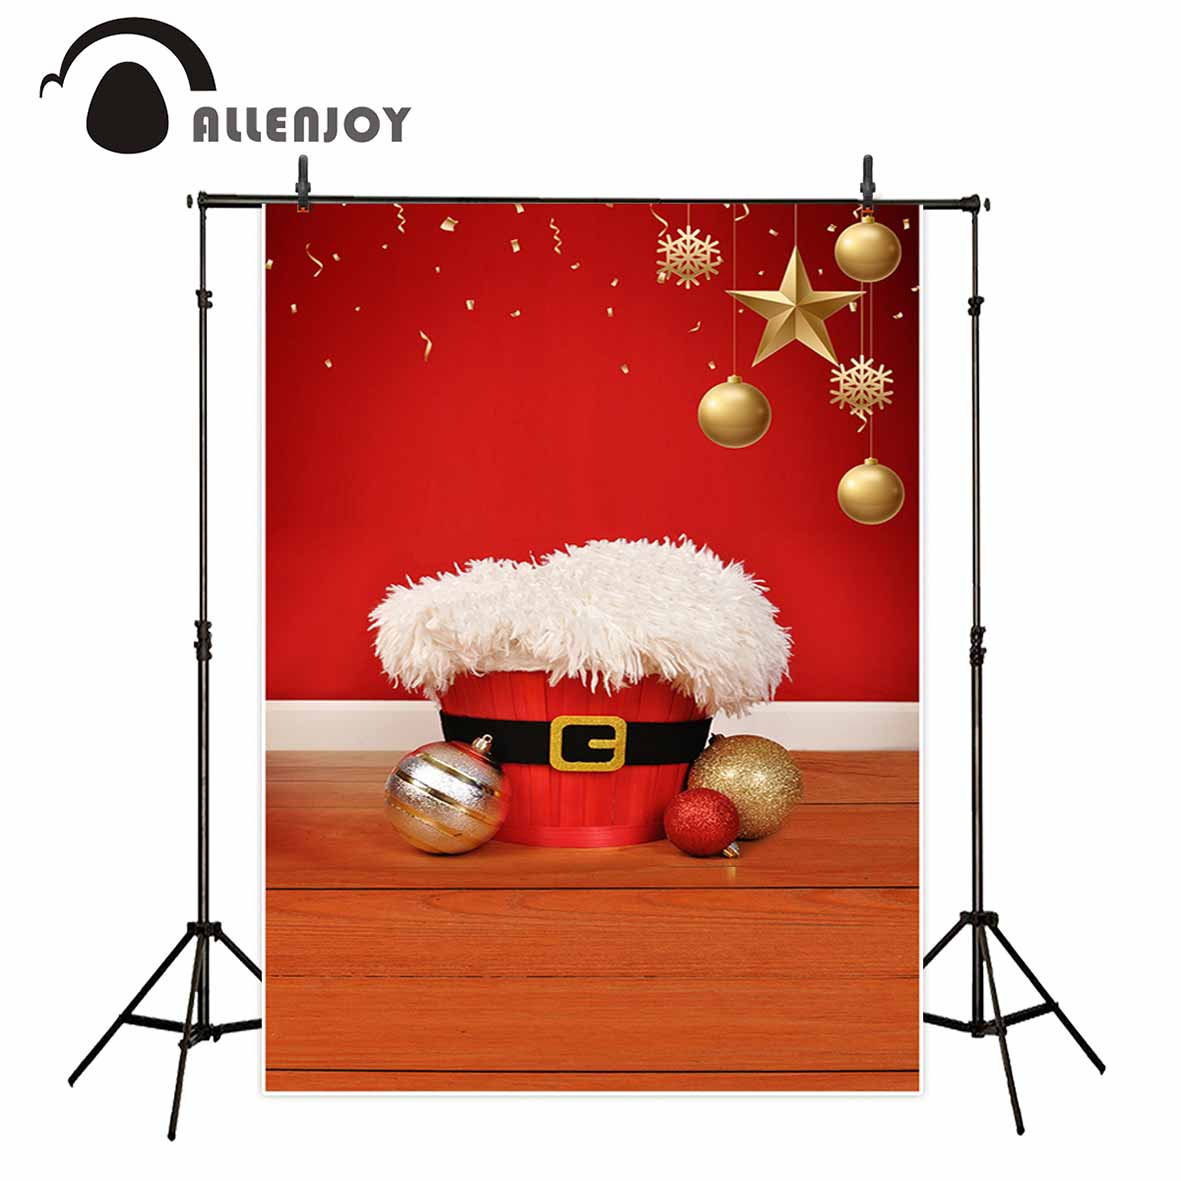 Allenjoy photography backdrop Christmas baby shower stars birthday red background professional photo studio photobooth allenjoy photography background lovely clouds cotton hearts stars rainbow backdrop photo studio camera fotografica